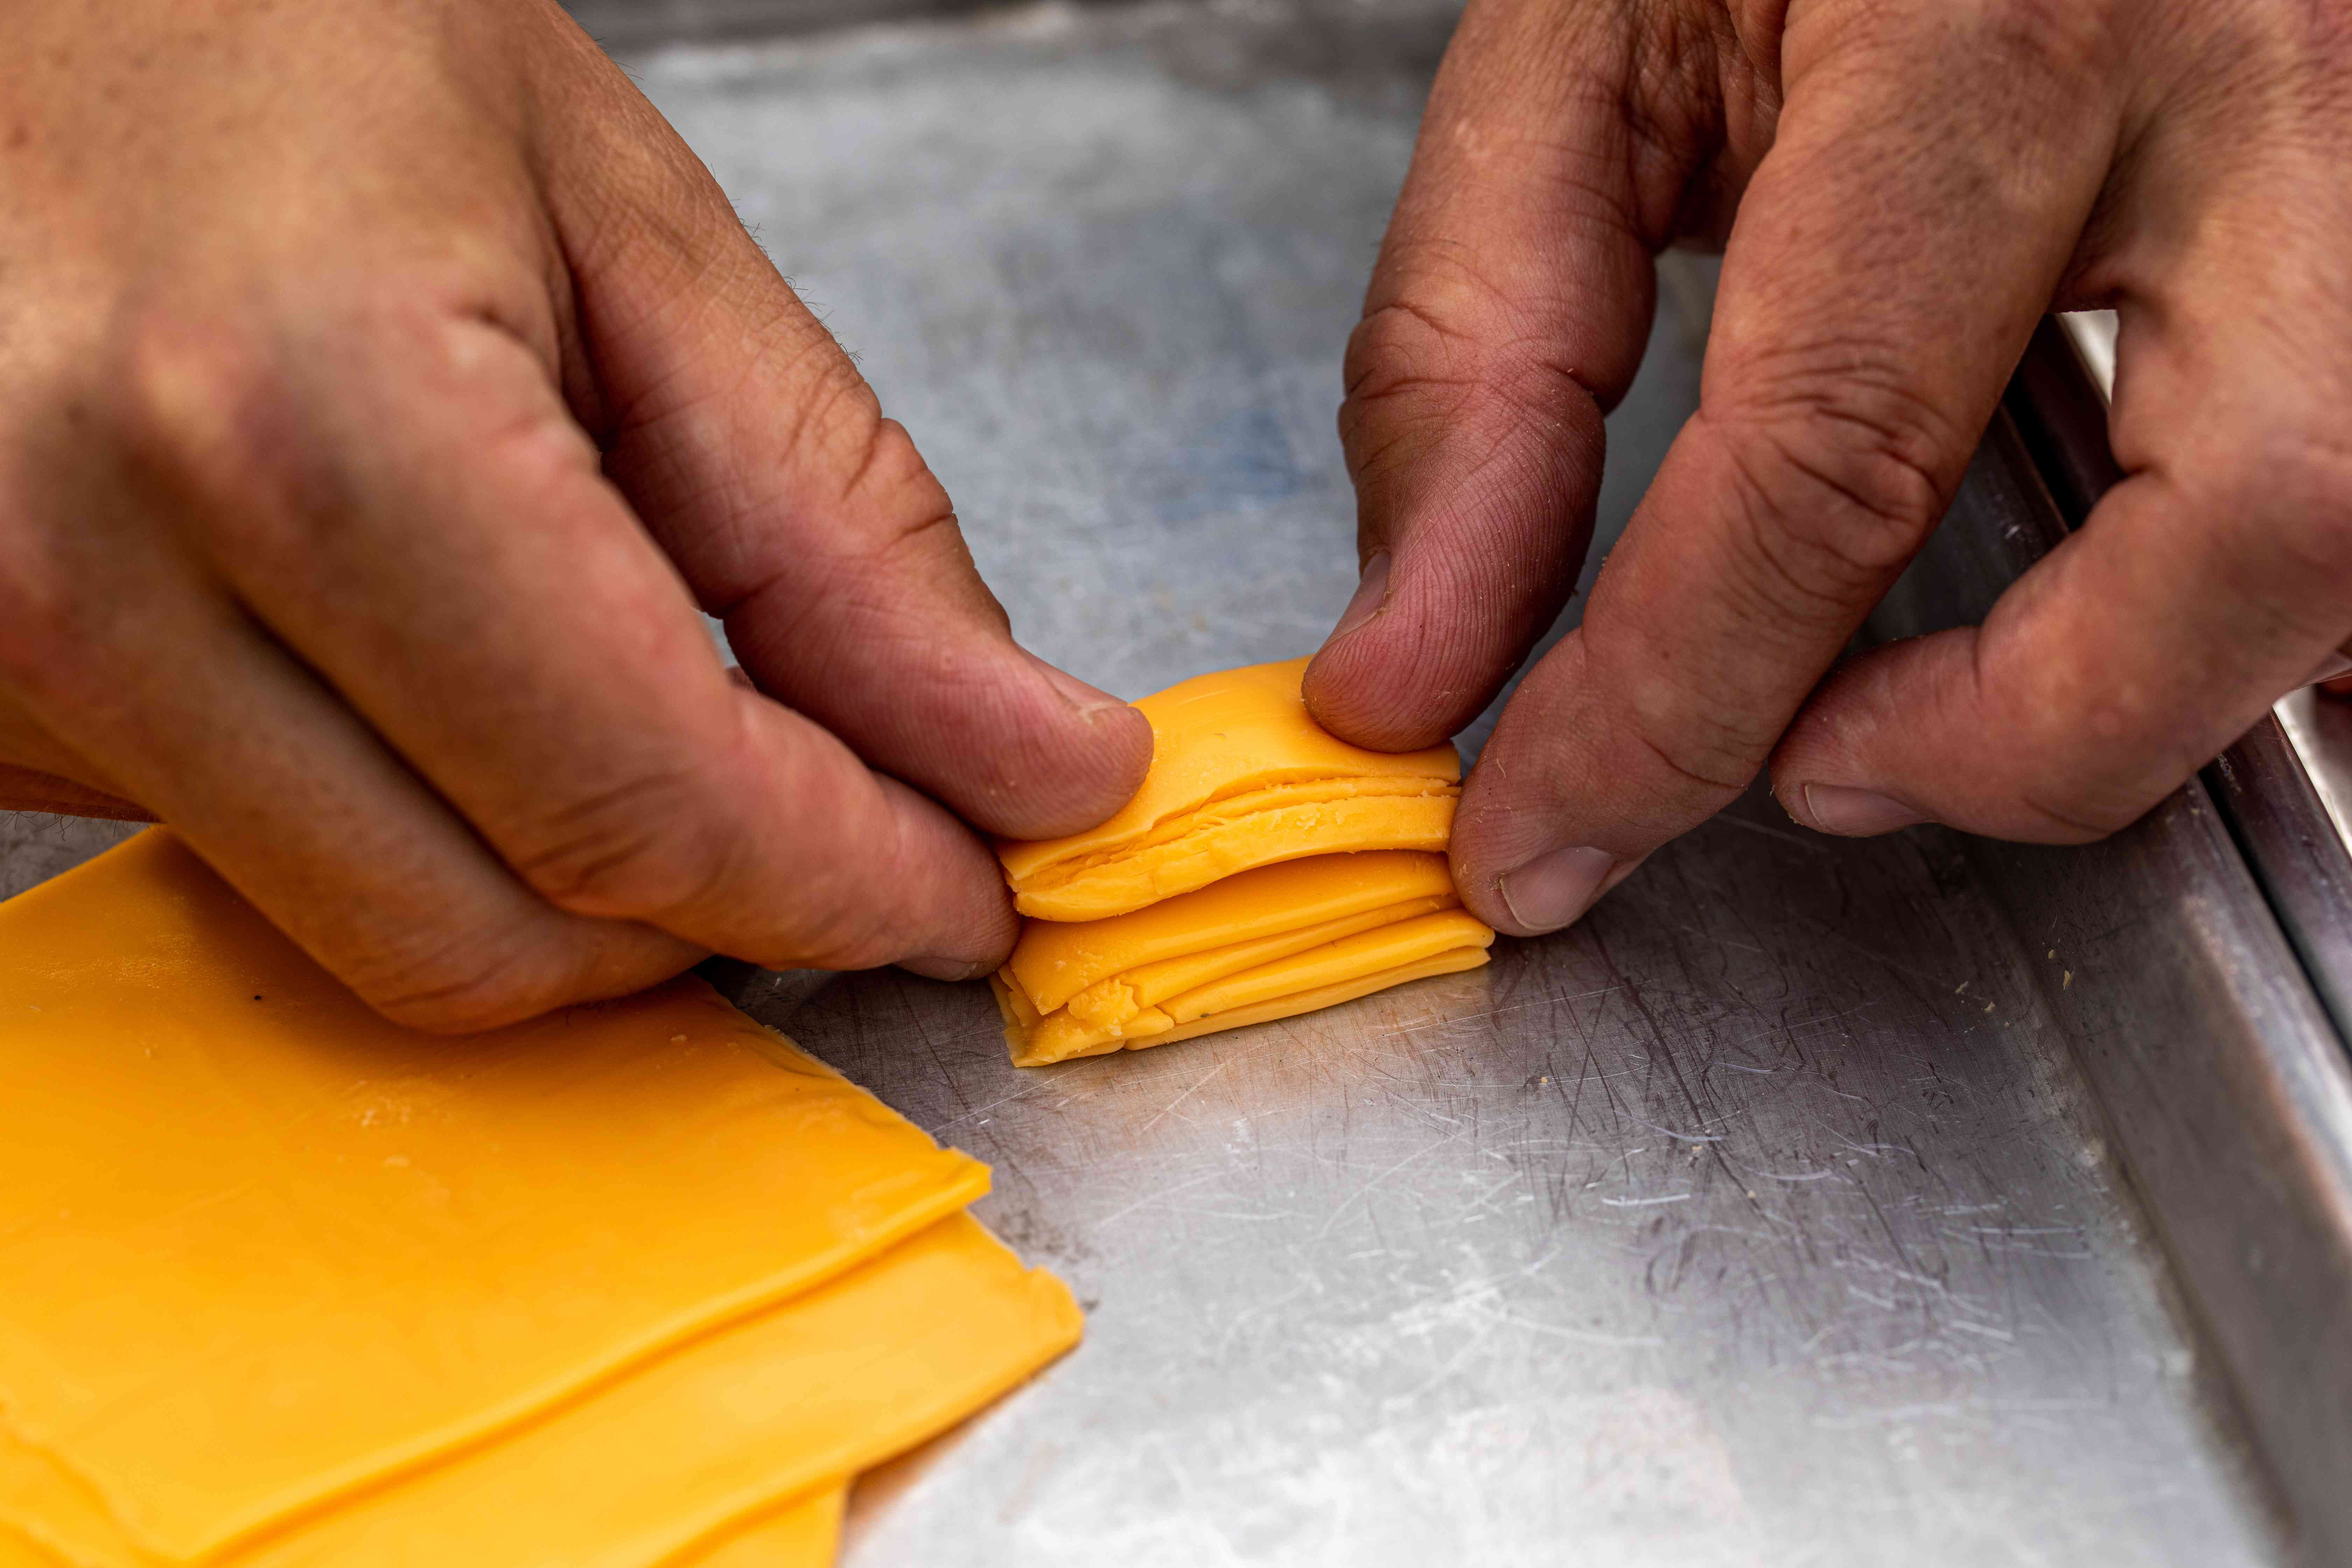 Folding sliced cheese to show how to make a Jucy Lucy burger